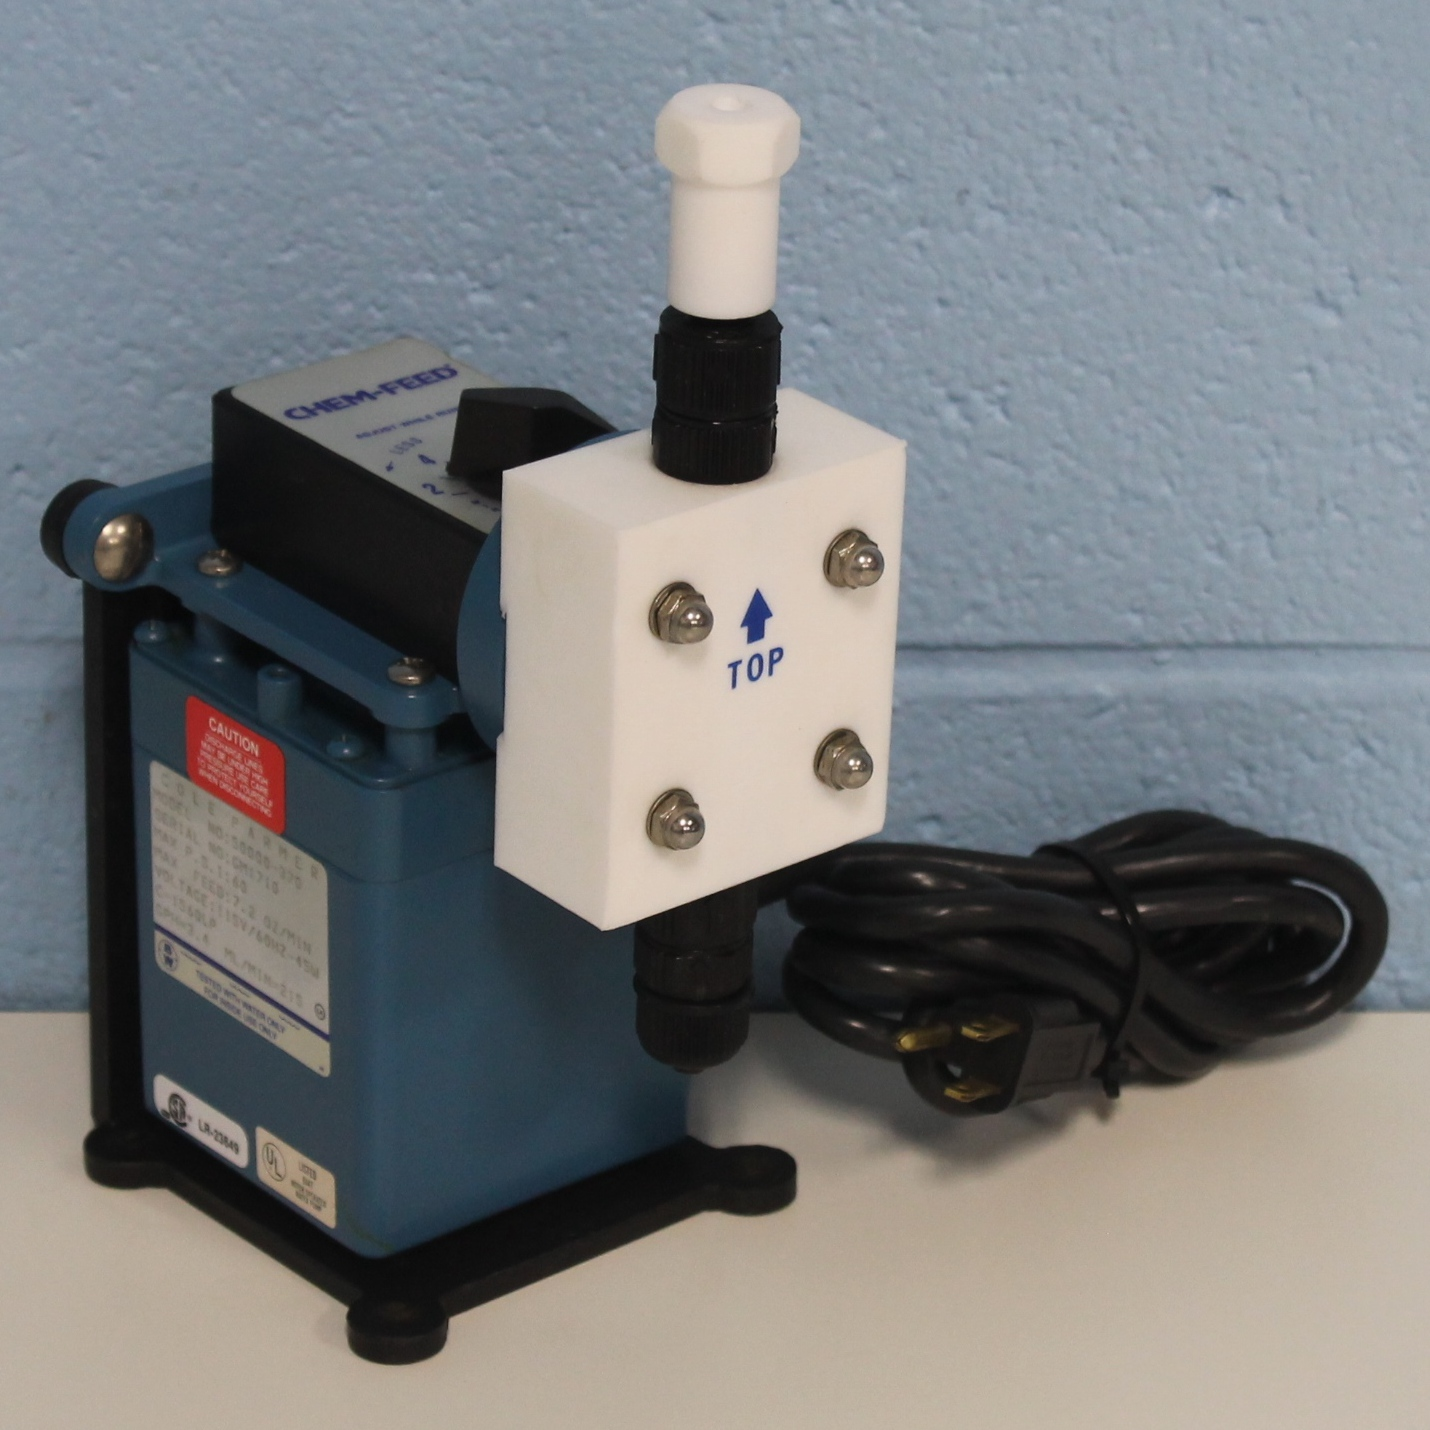 Cole-Parmer CHEM-FEED Injector Pump Model 50000-370 Image